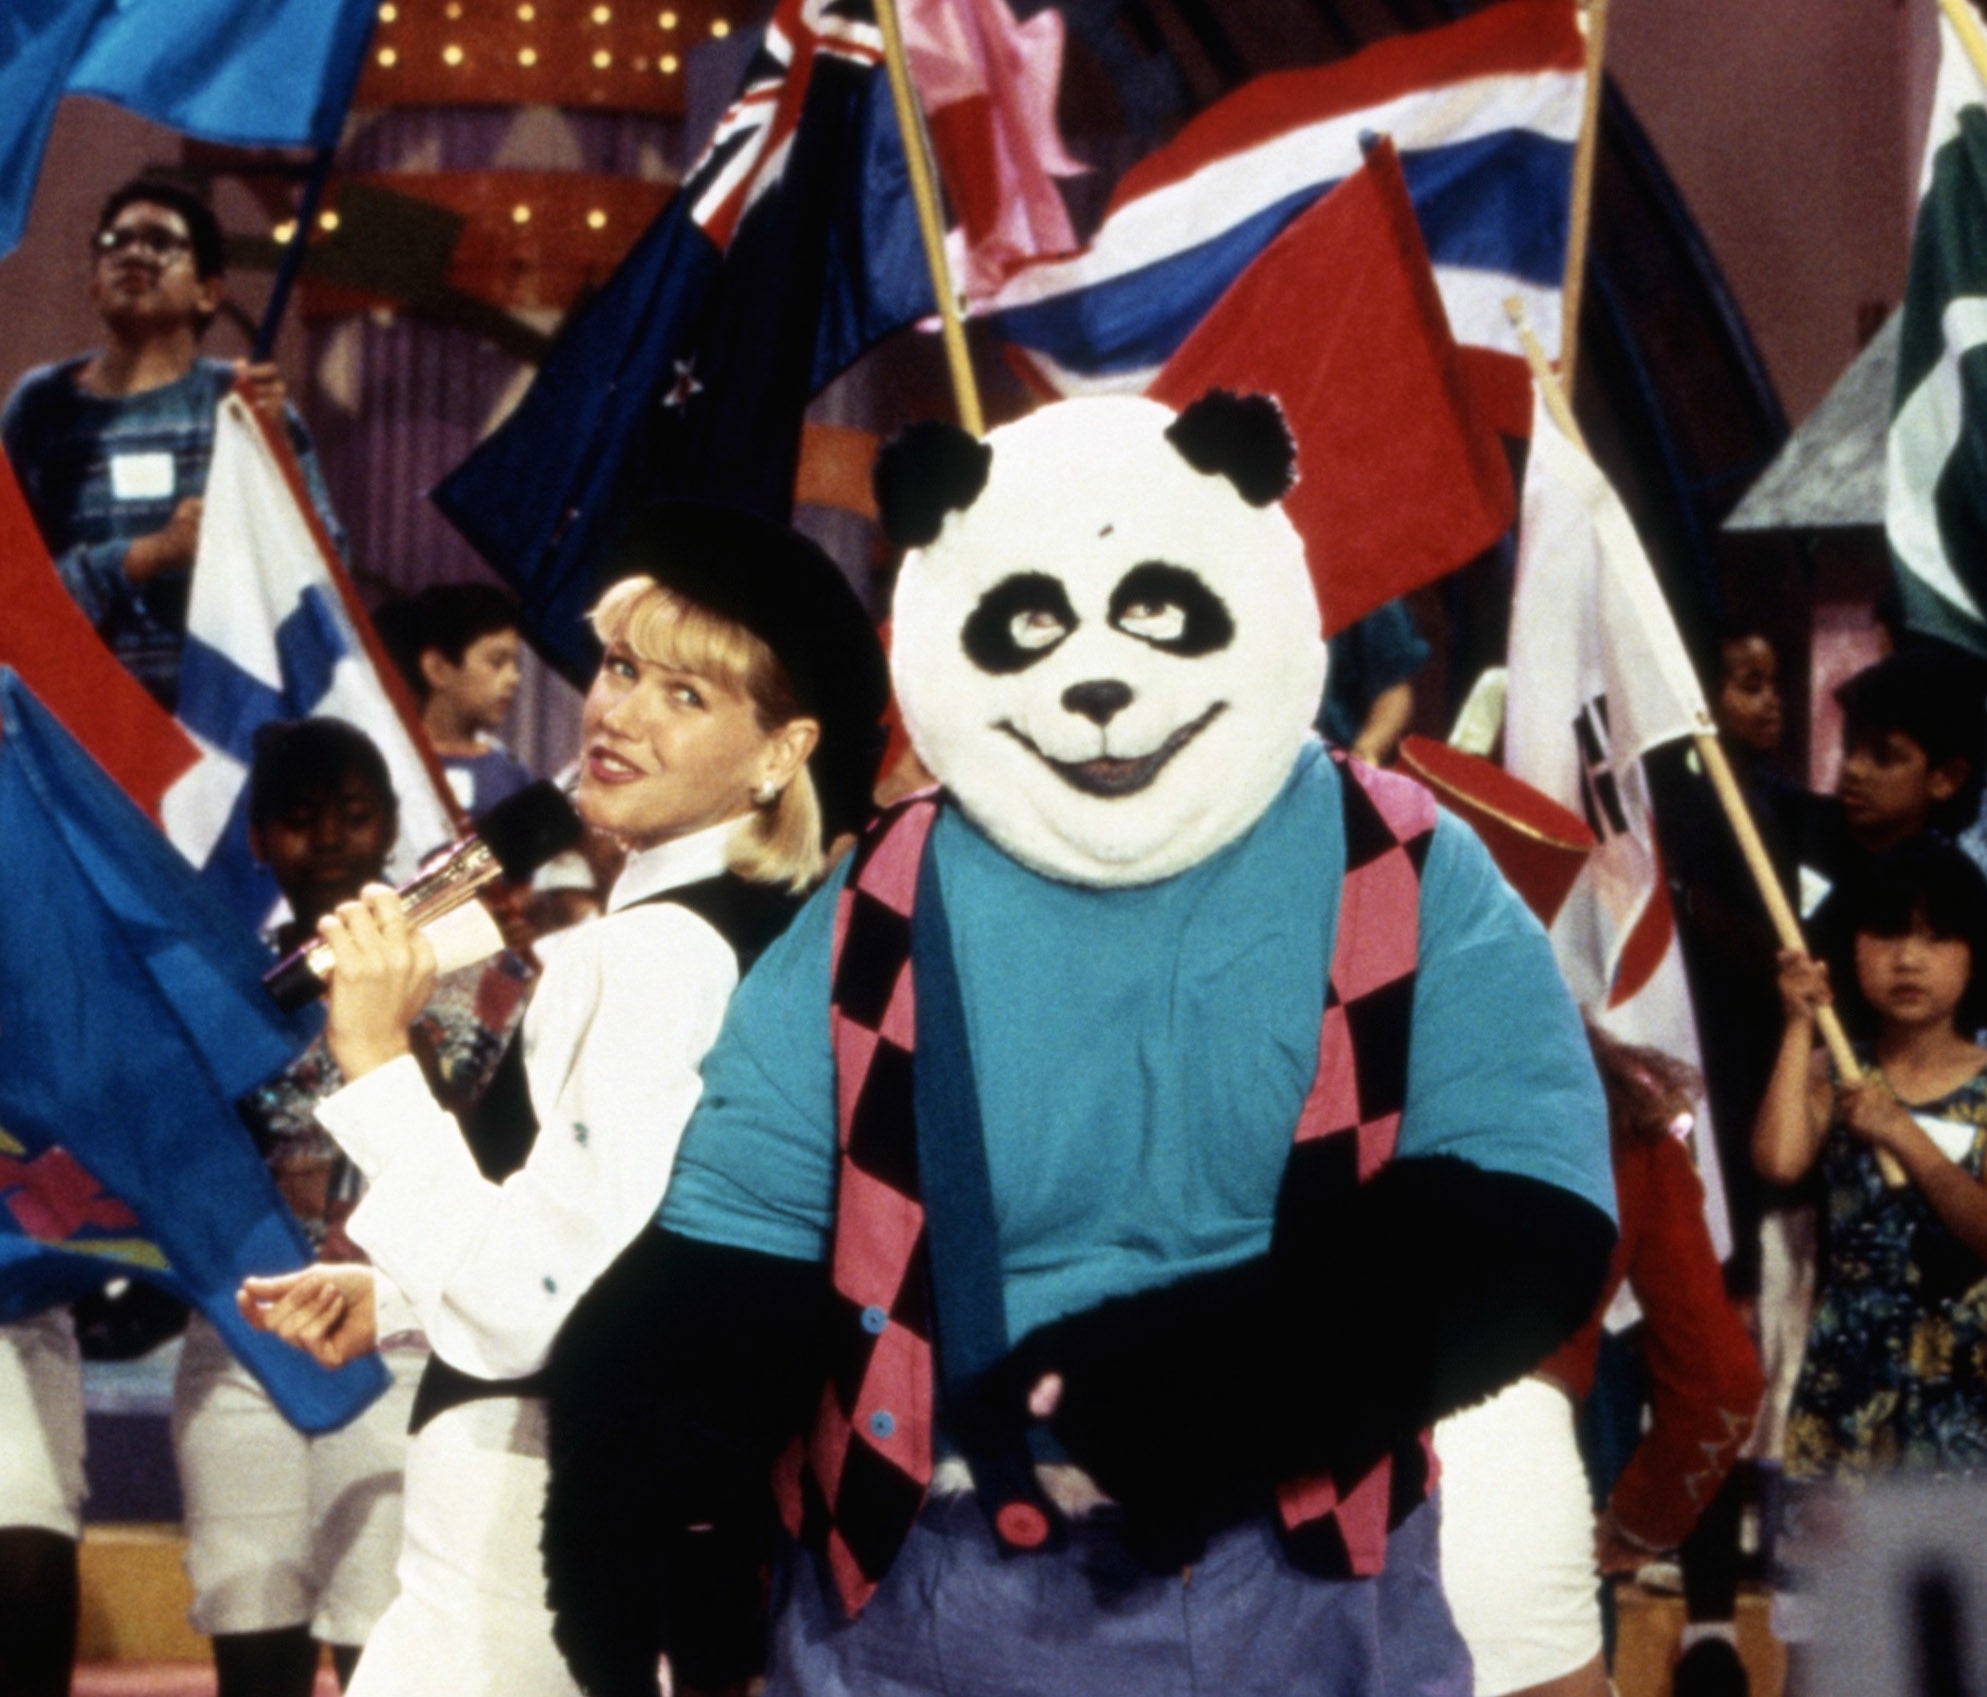 Xuxa standing next to a man in a Panda costume wearing human clothes